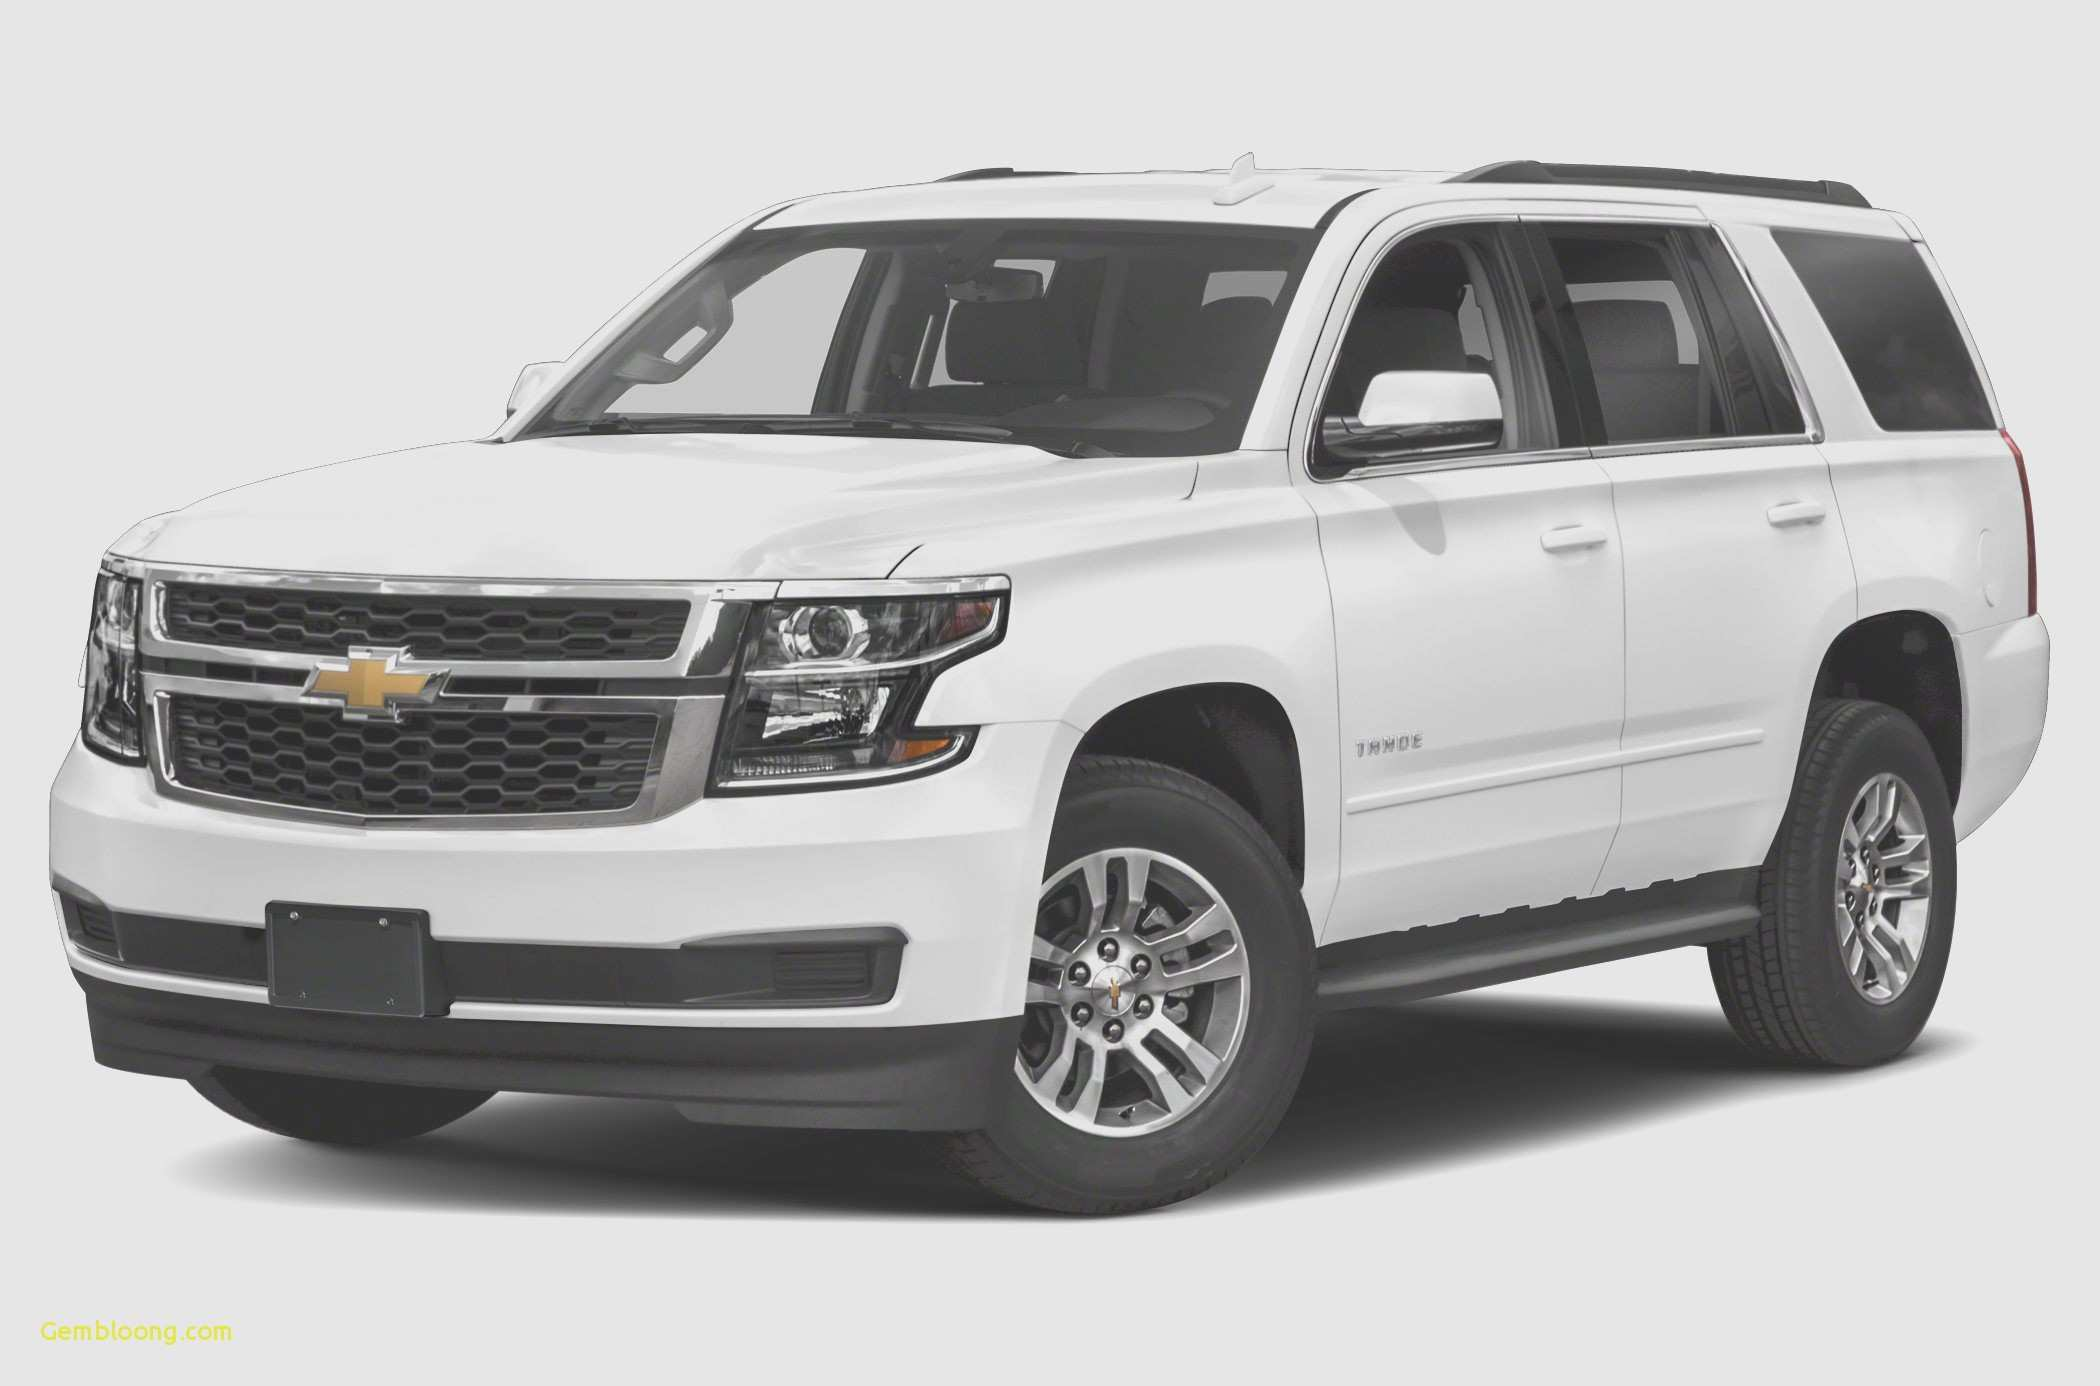 44 All New 2019 Chevy Avalanche Redesign